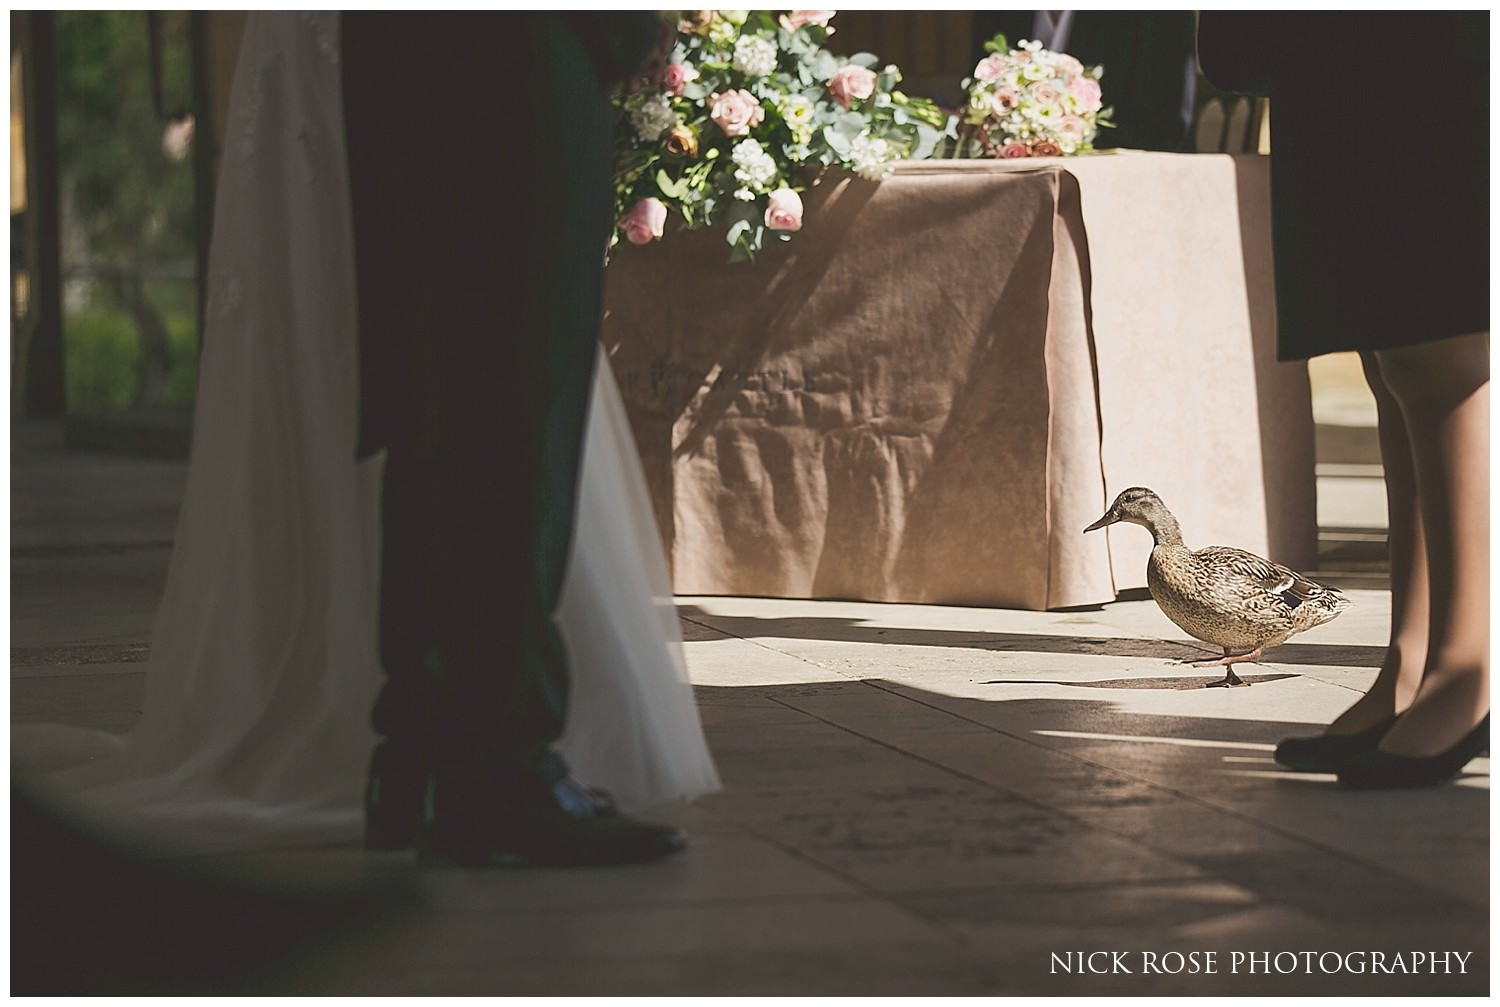 Family of ducks watching a civil wedding ceremony at Hever Castle in Kent